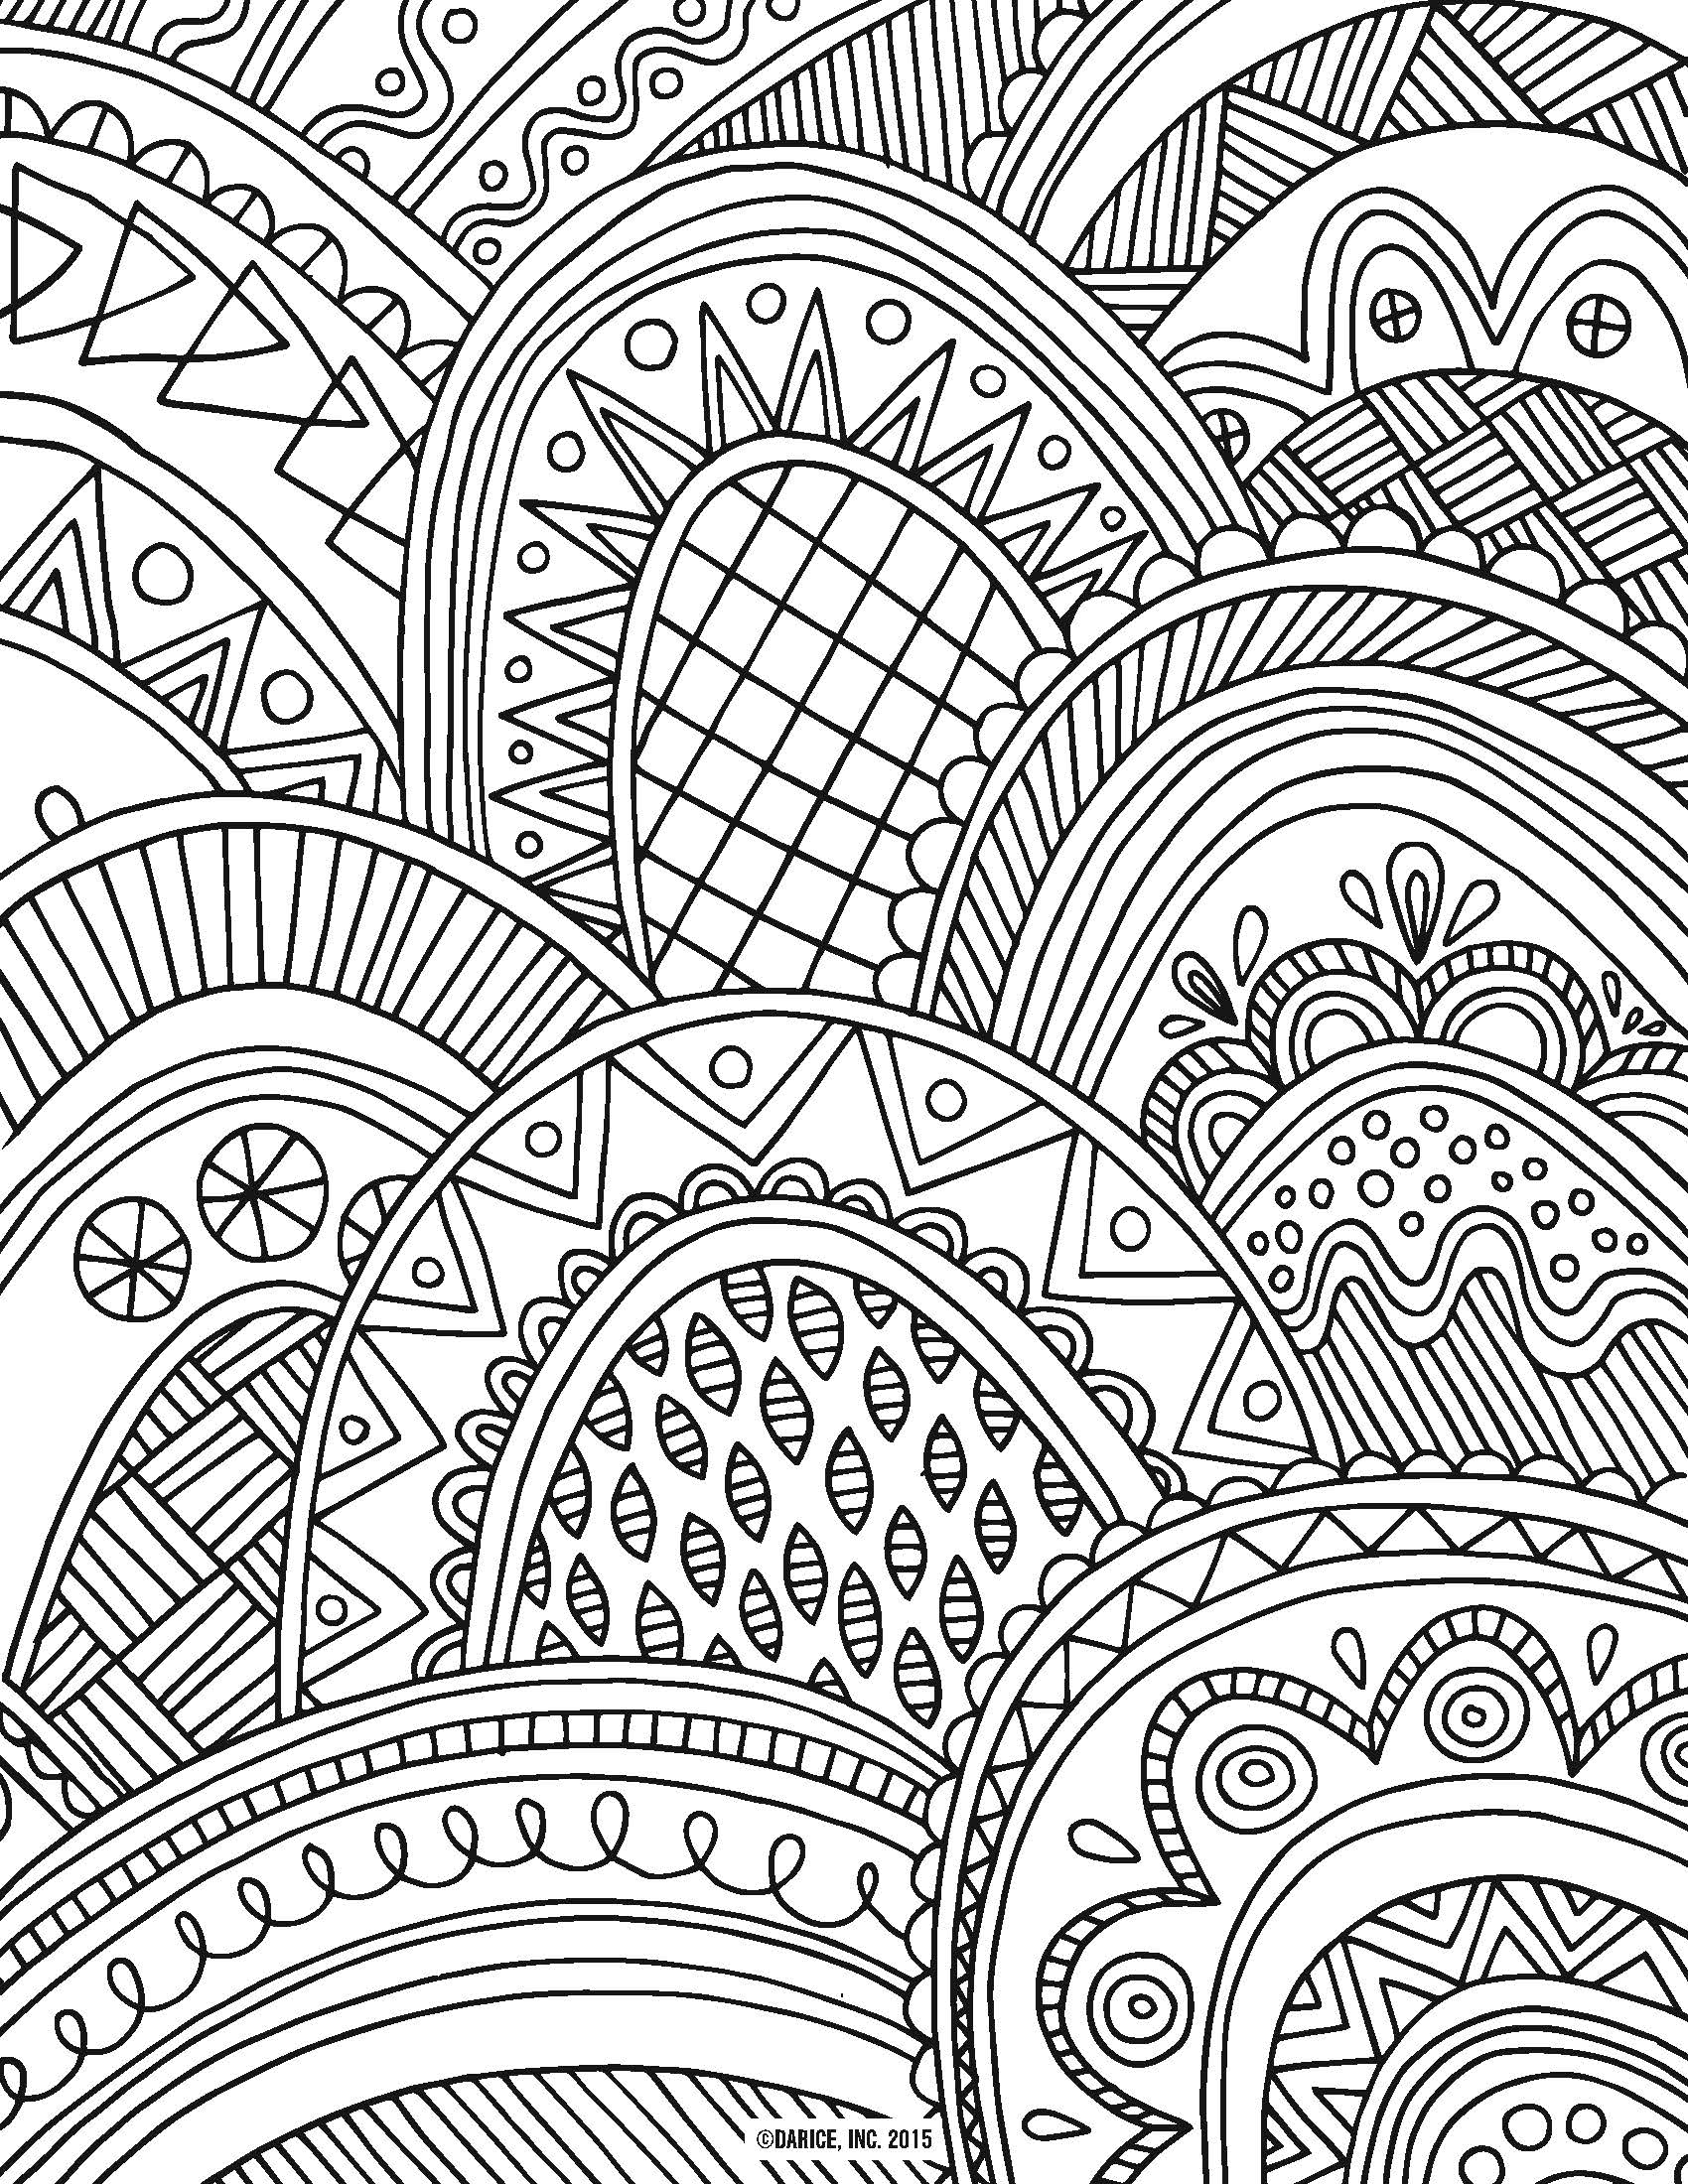 fun colouring pages for kids 40 top free coloring pages we need fun pages kids fun colouring for